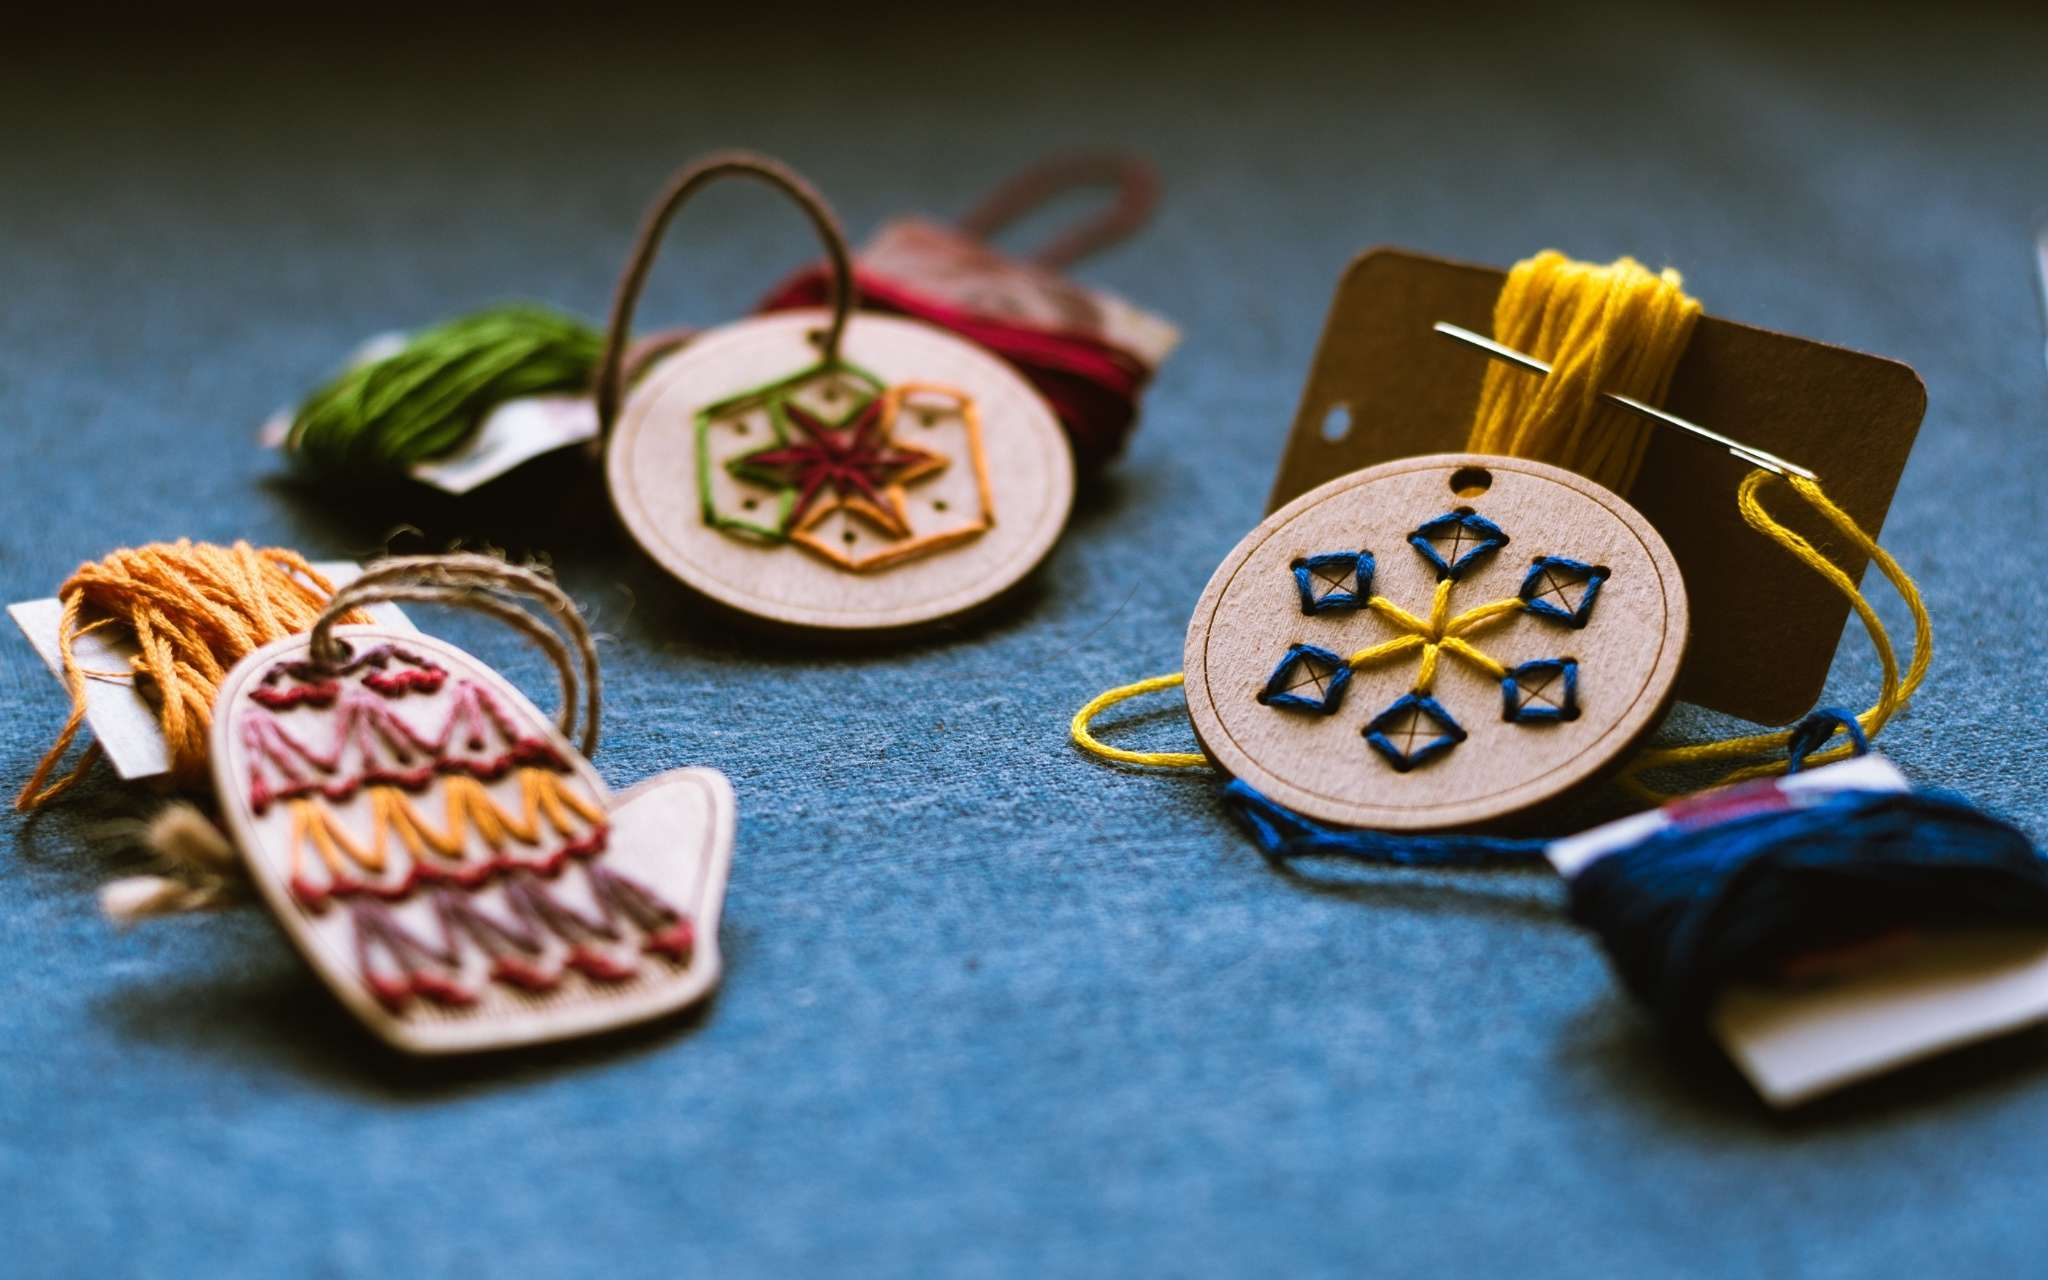 Wooden hanging ornaments shaped as mittens, a circle and a snowflake have been hand stitched through holes in the wood with brightly coloured threads.